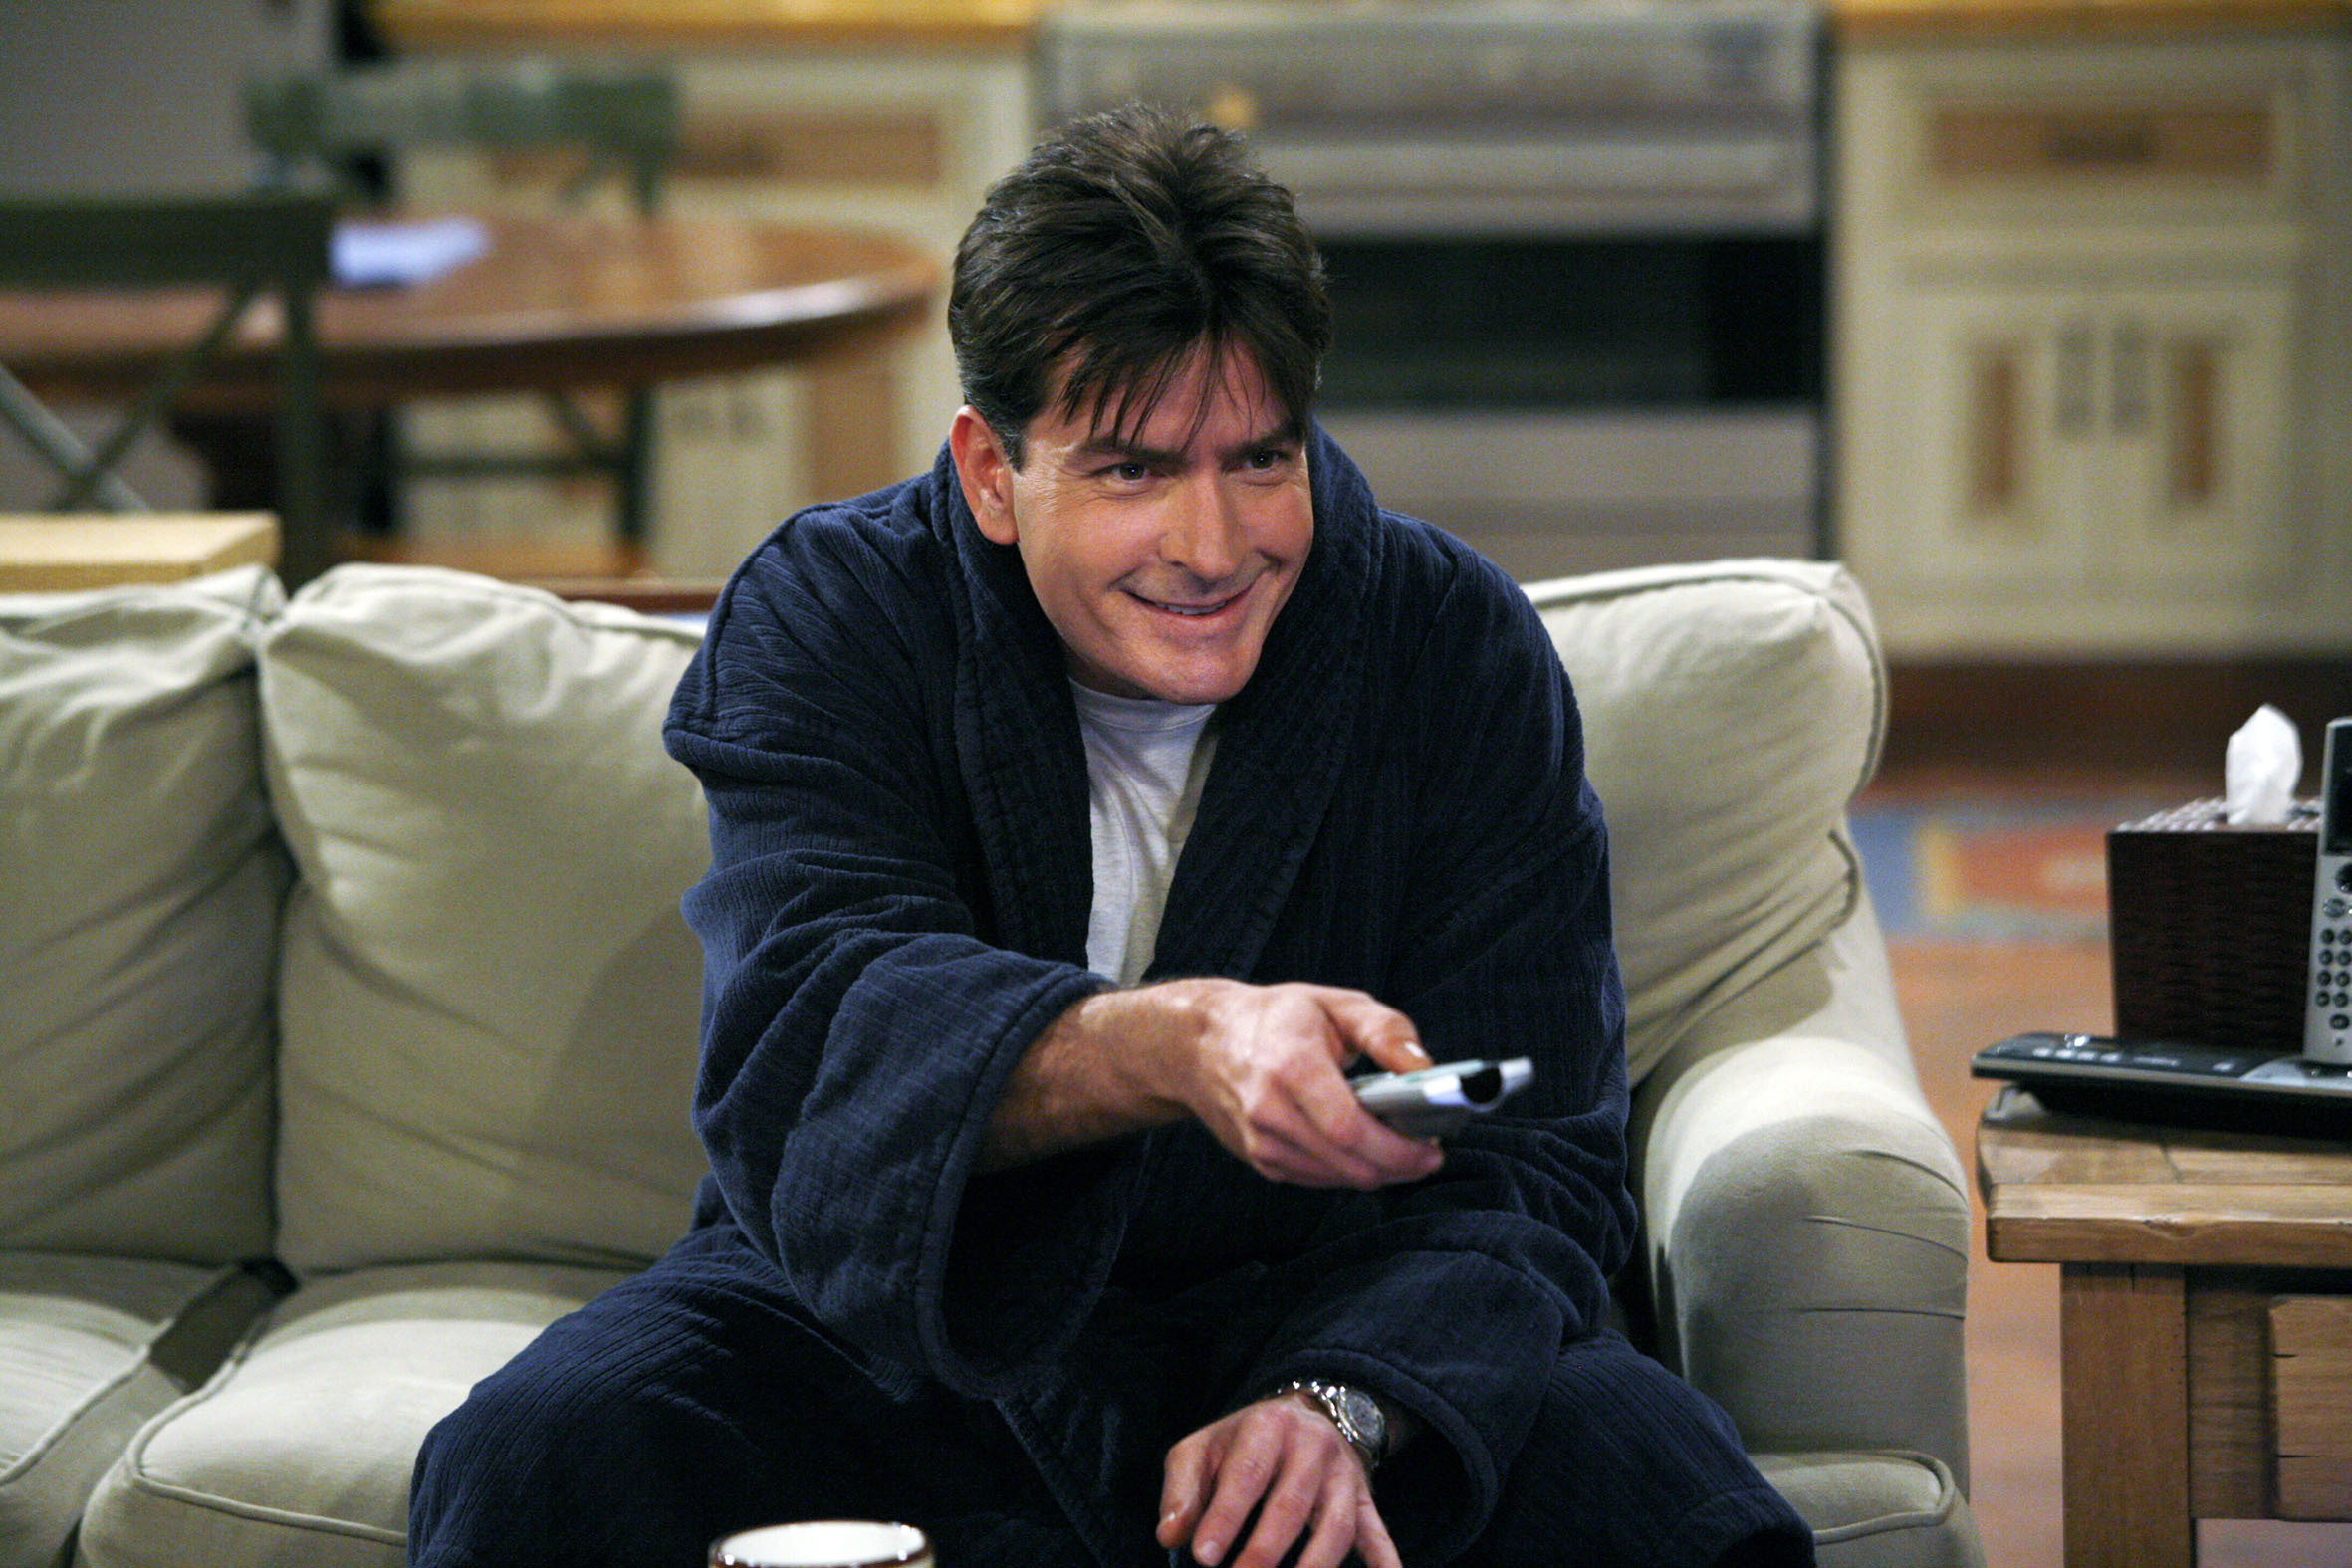 Charlie Sheen watches TV in a scene from Two and a Half Men